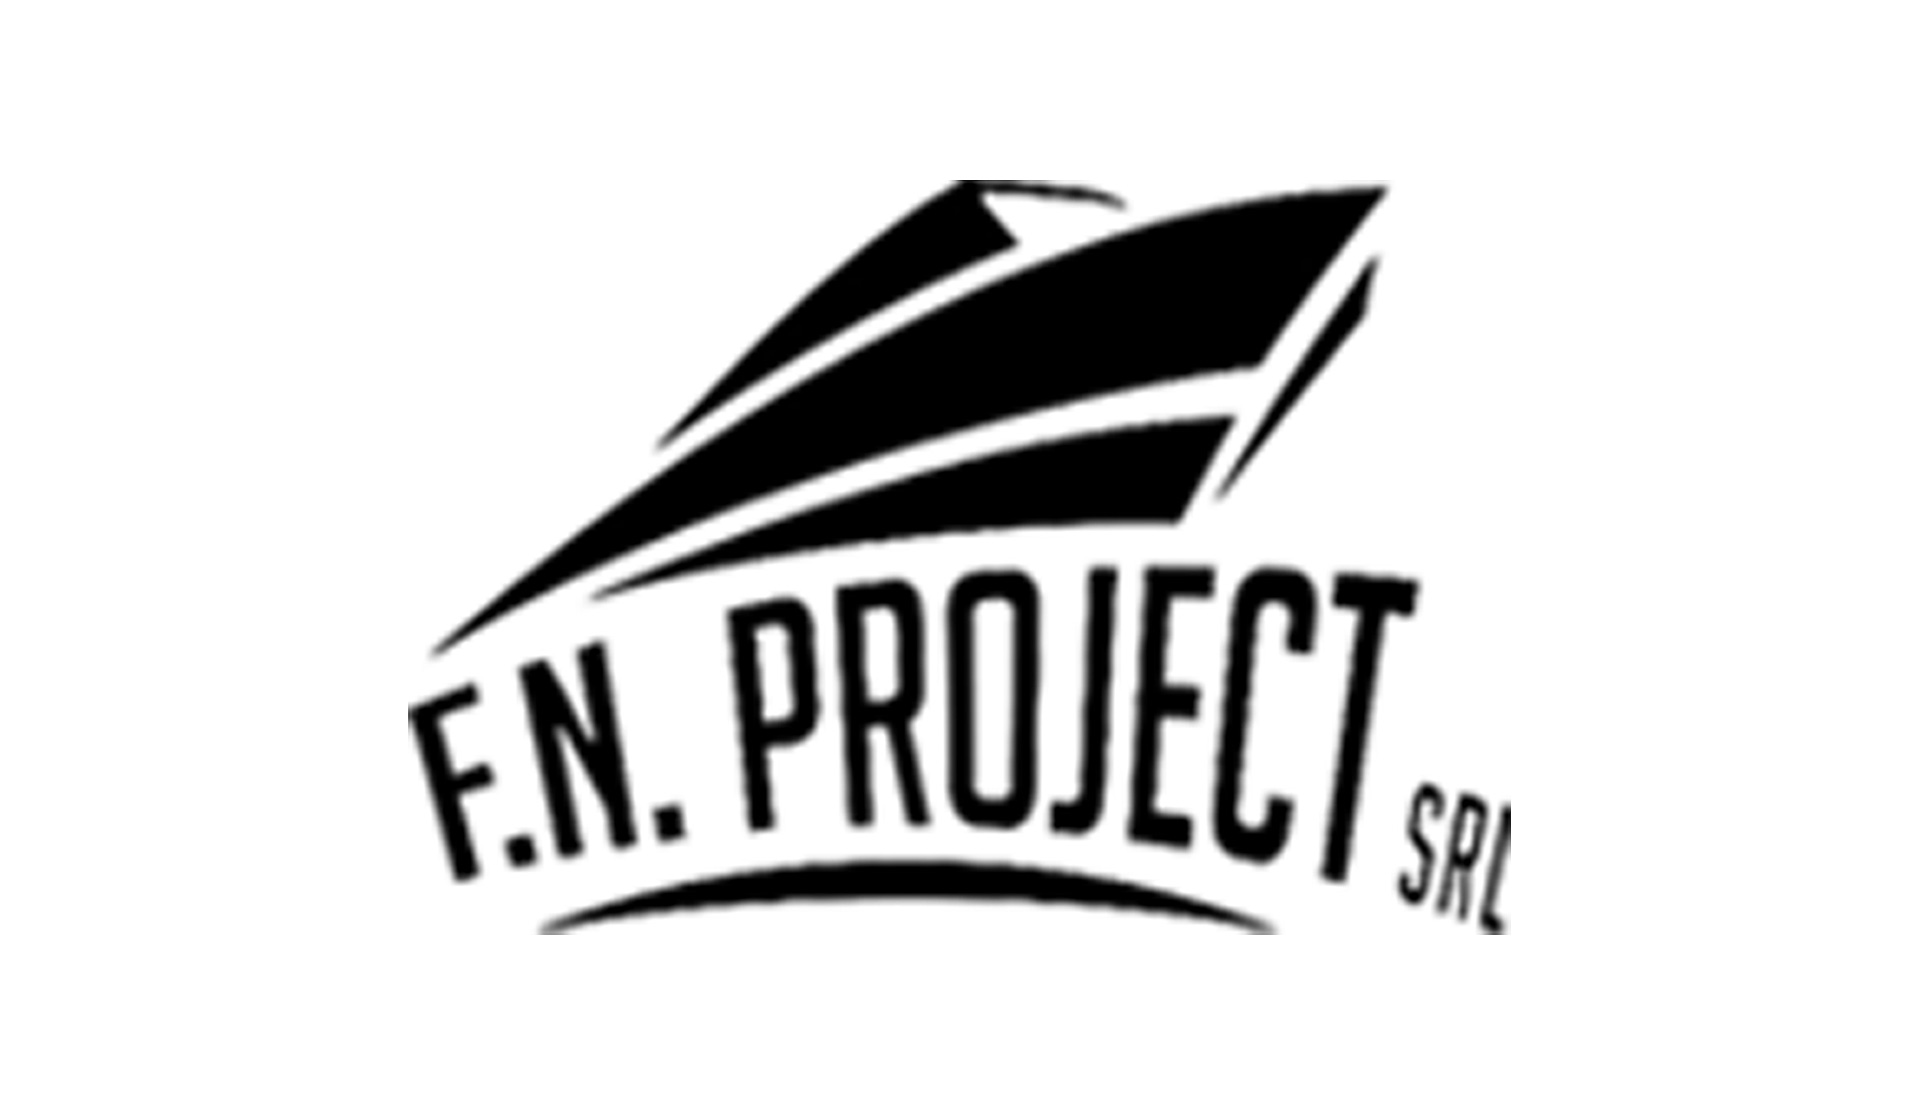 FN Project